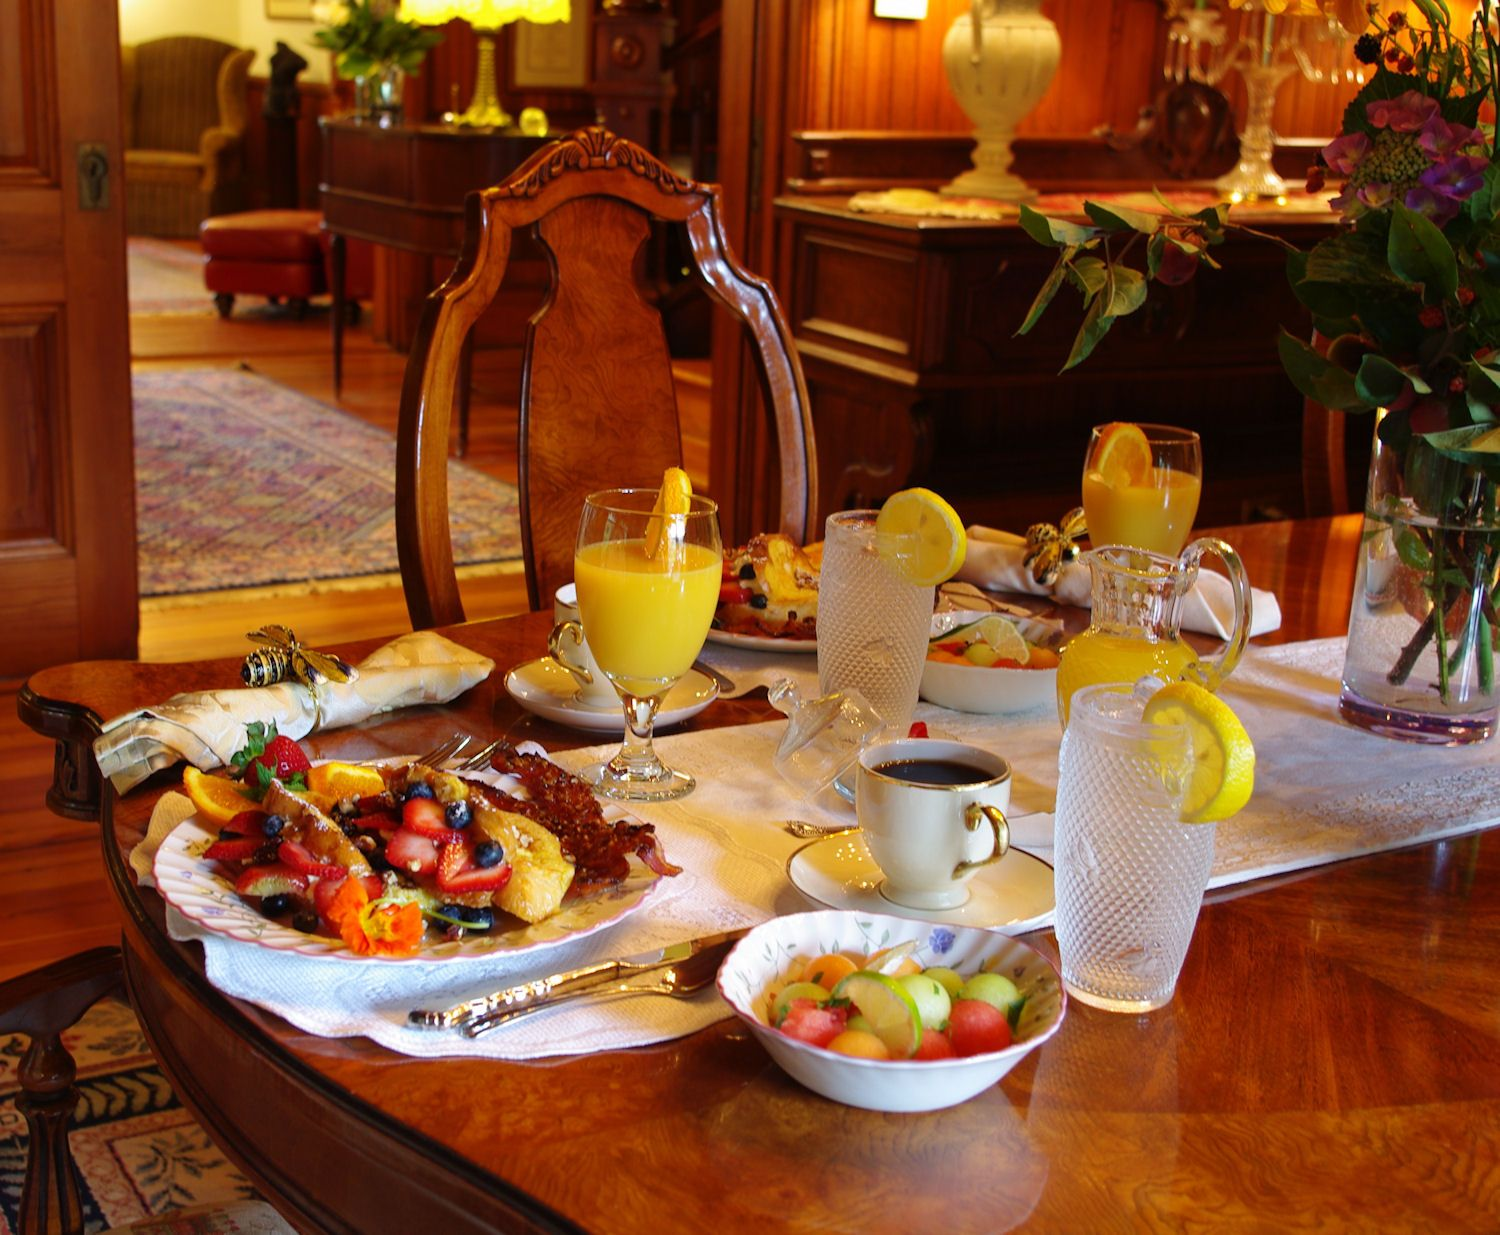 Top Rated Asheville Bed and Breakfasts Bed and breakfast